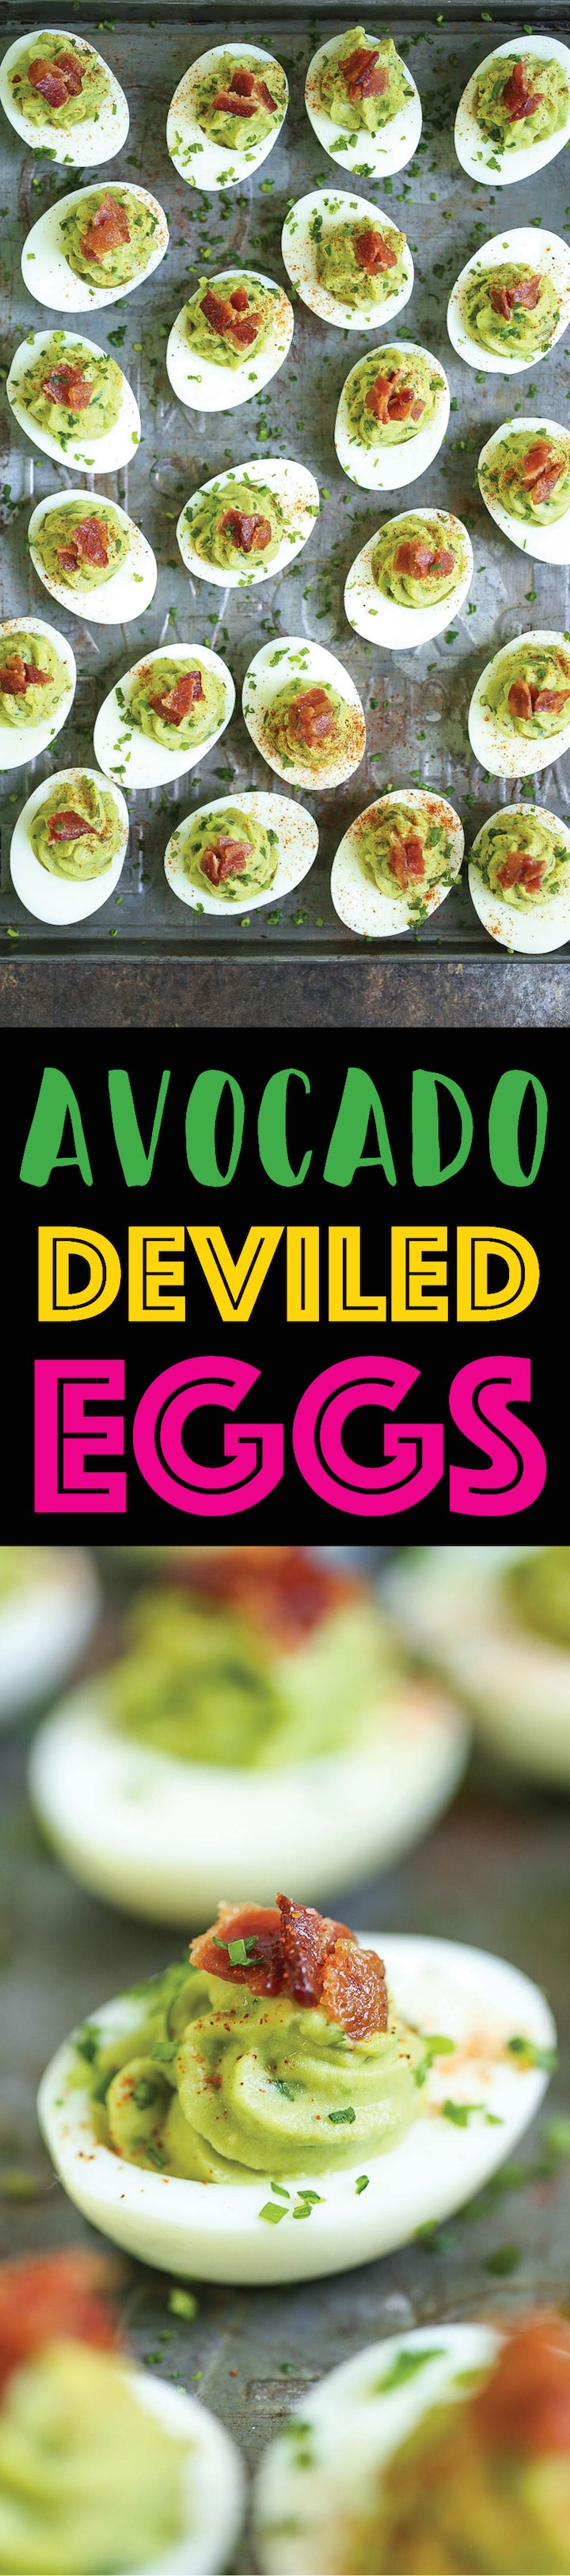 Avocado Deviled Eggs - So much better than your traditional-style deviled eggs! Loaded with avocado and crisp bacon bits. Can be made up to 3 hours ahead!